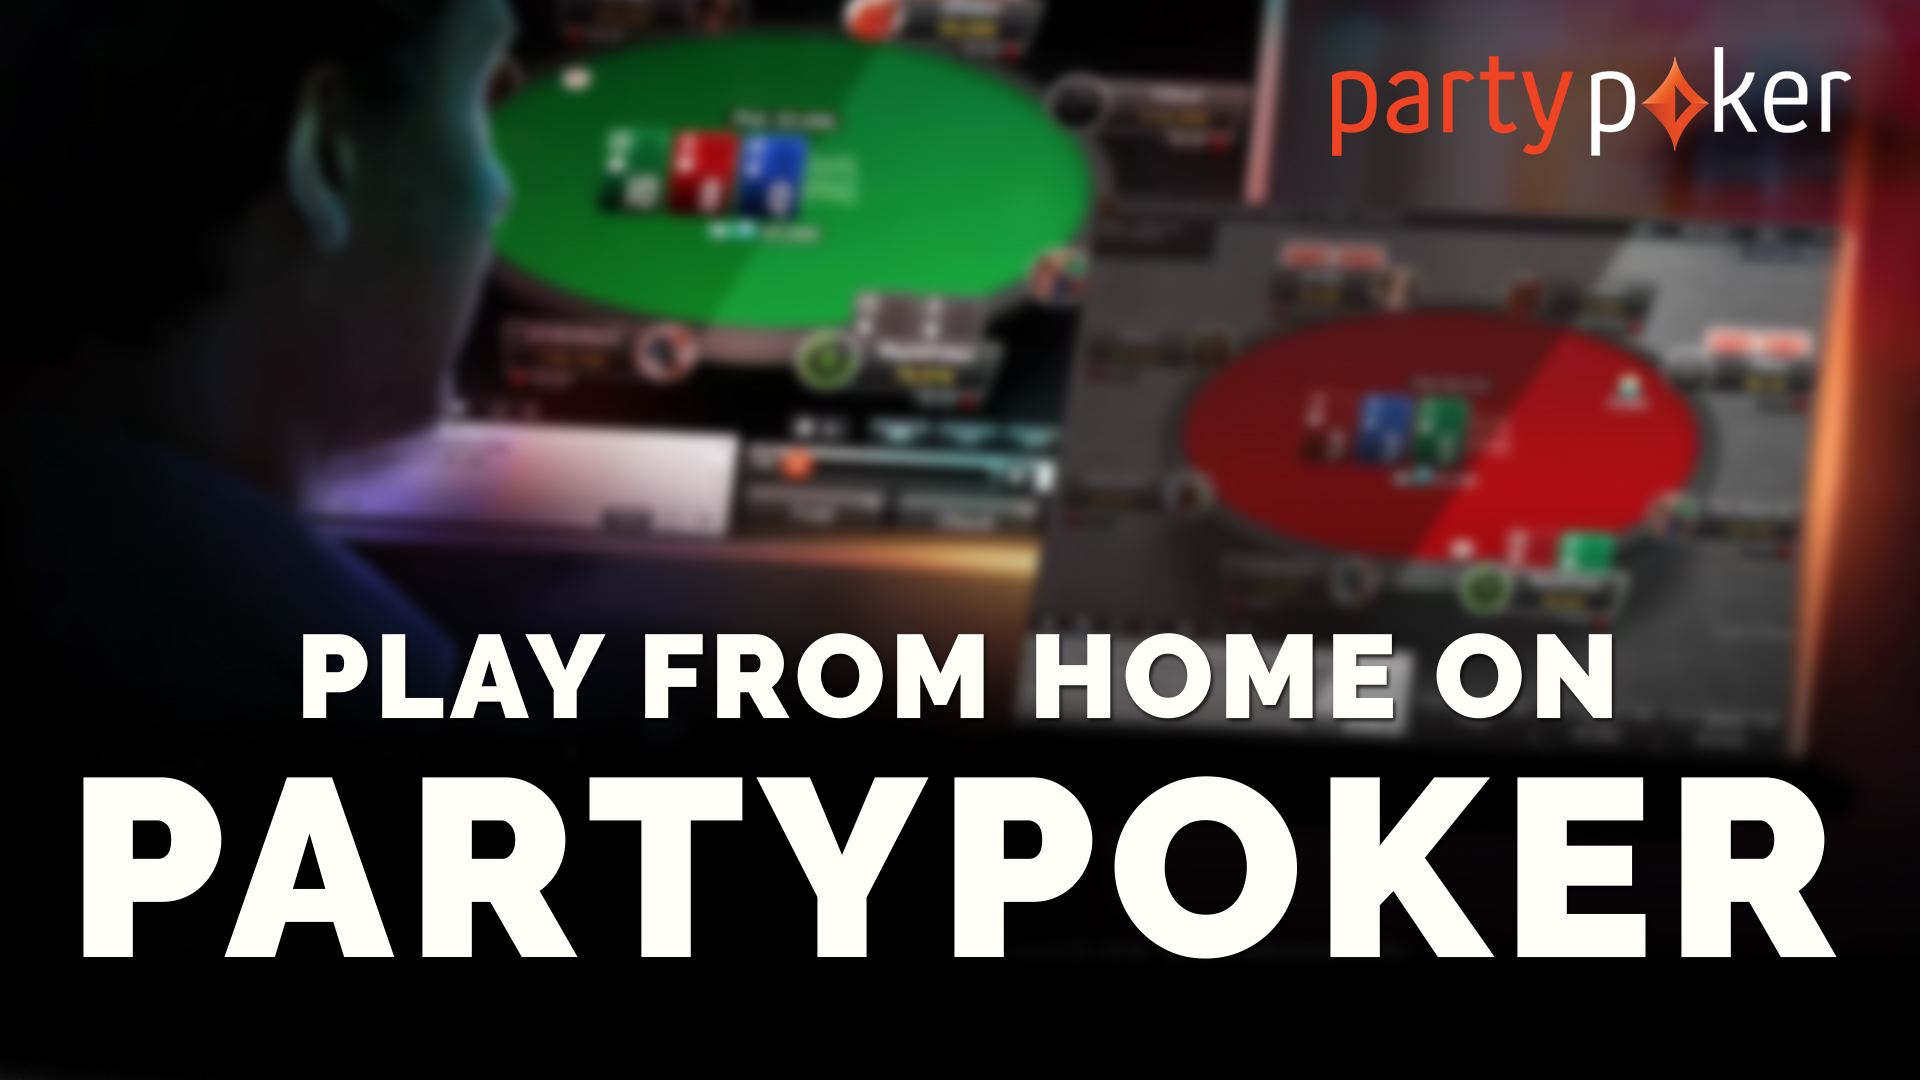 Play from home on partypoker